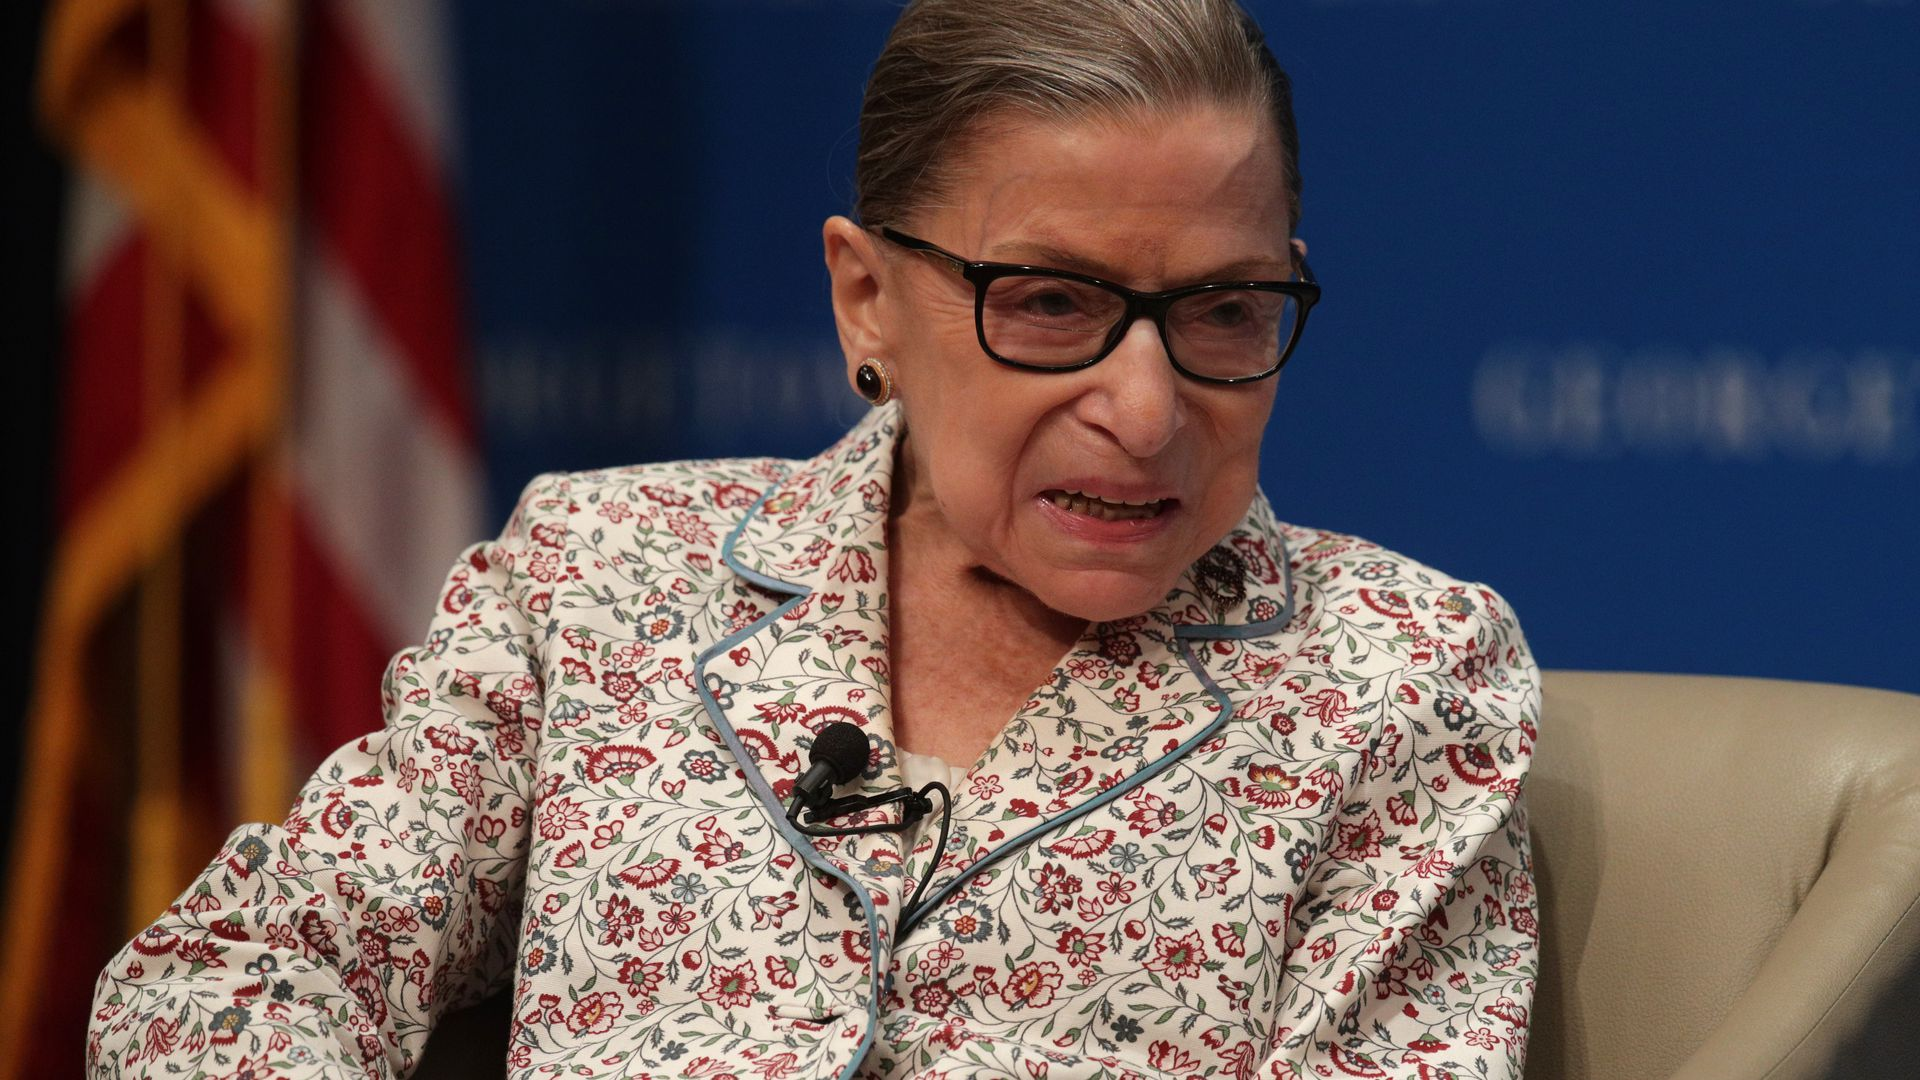 Justice Ruth Bader Ginsburg participates in a discussion at Georgetown University Law Center July 2